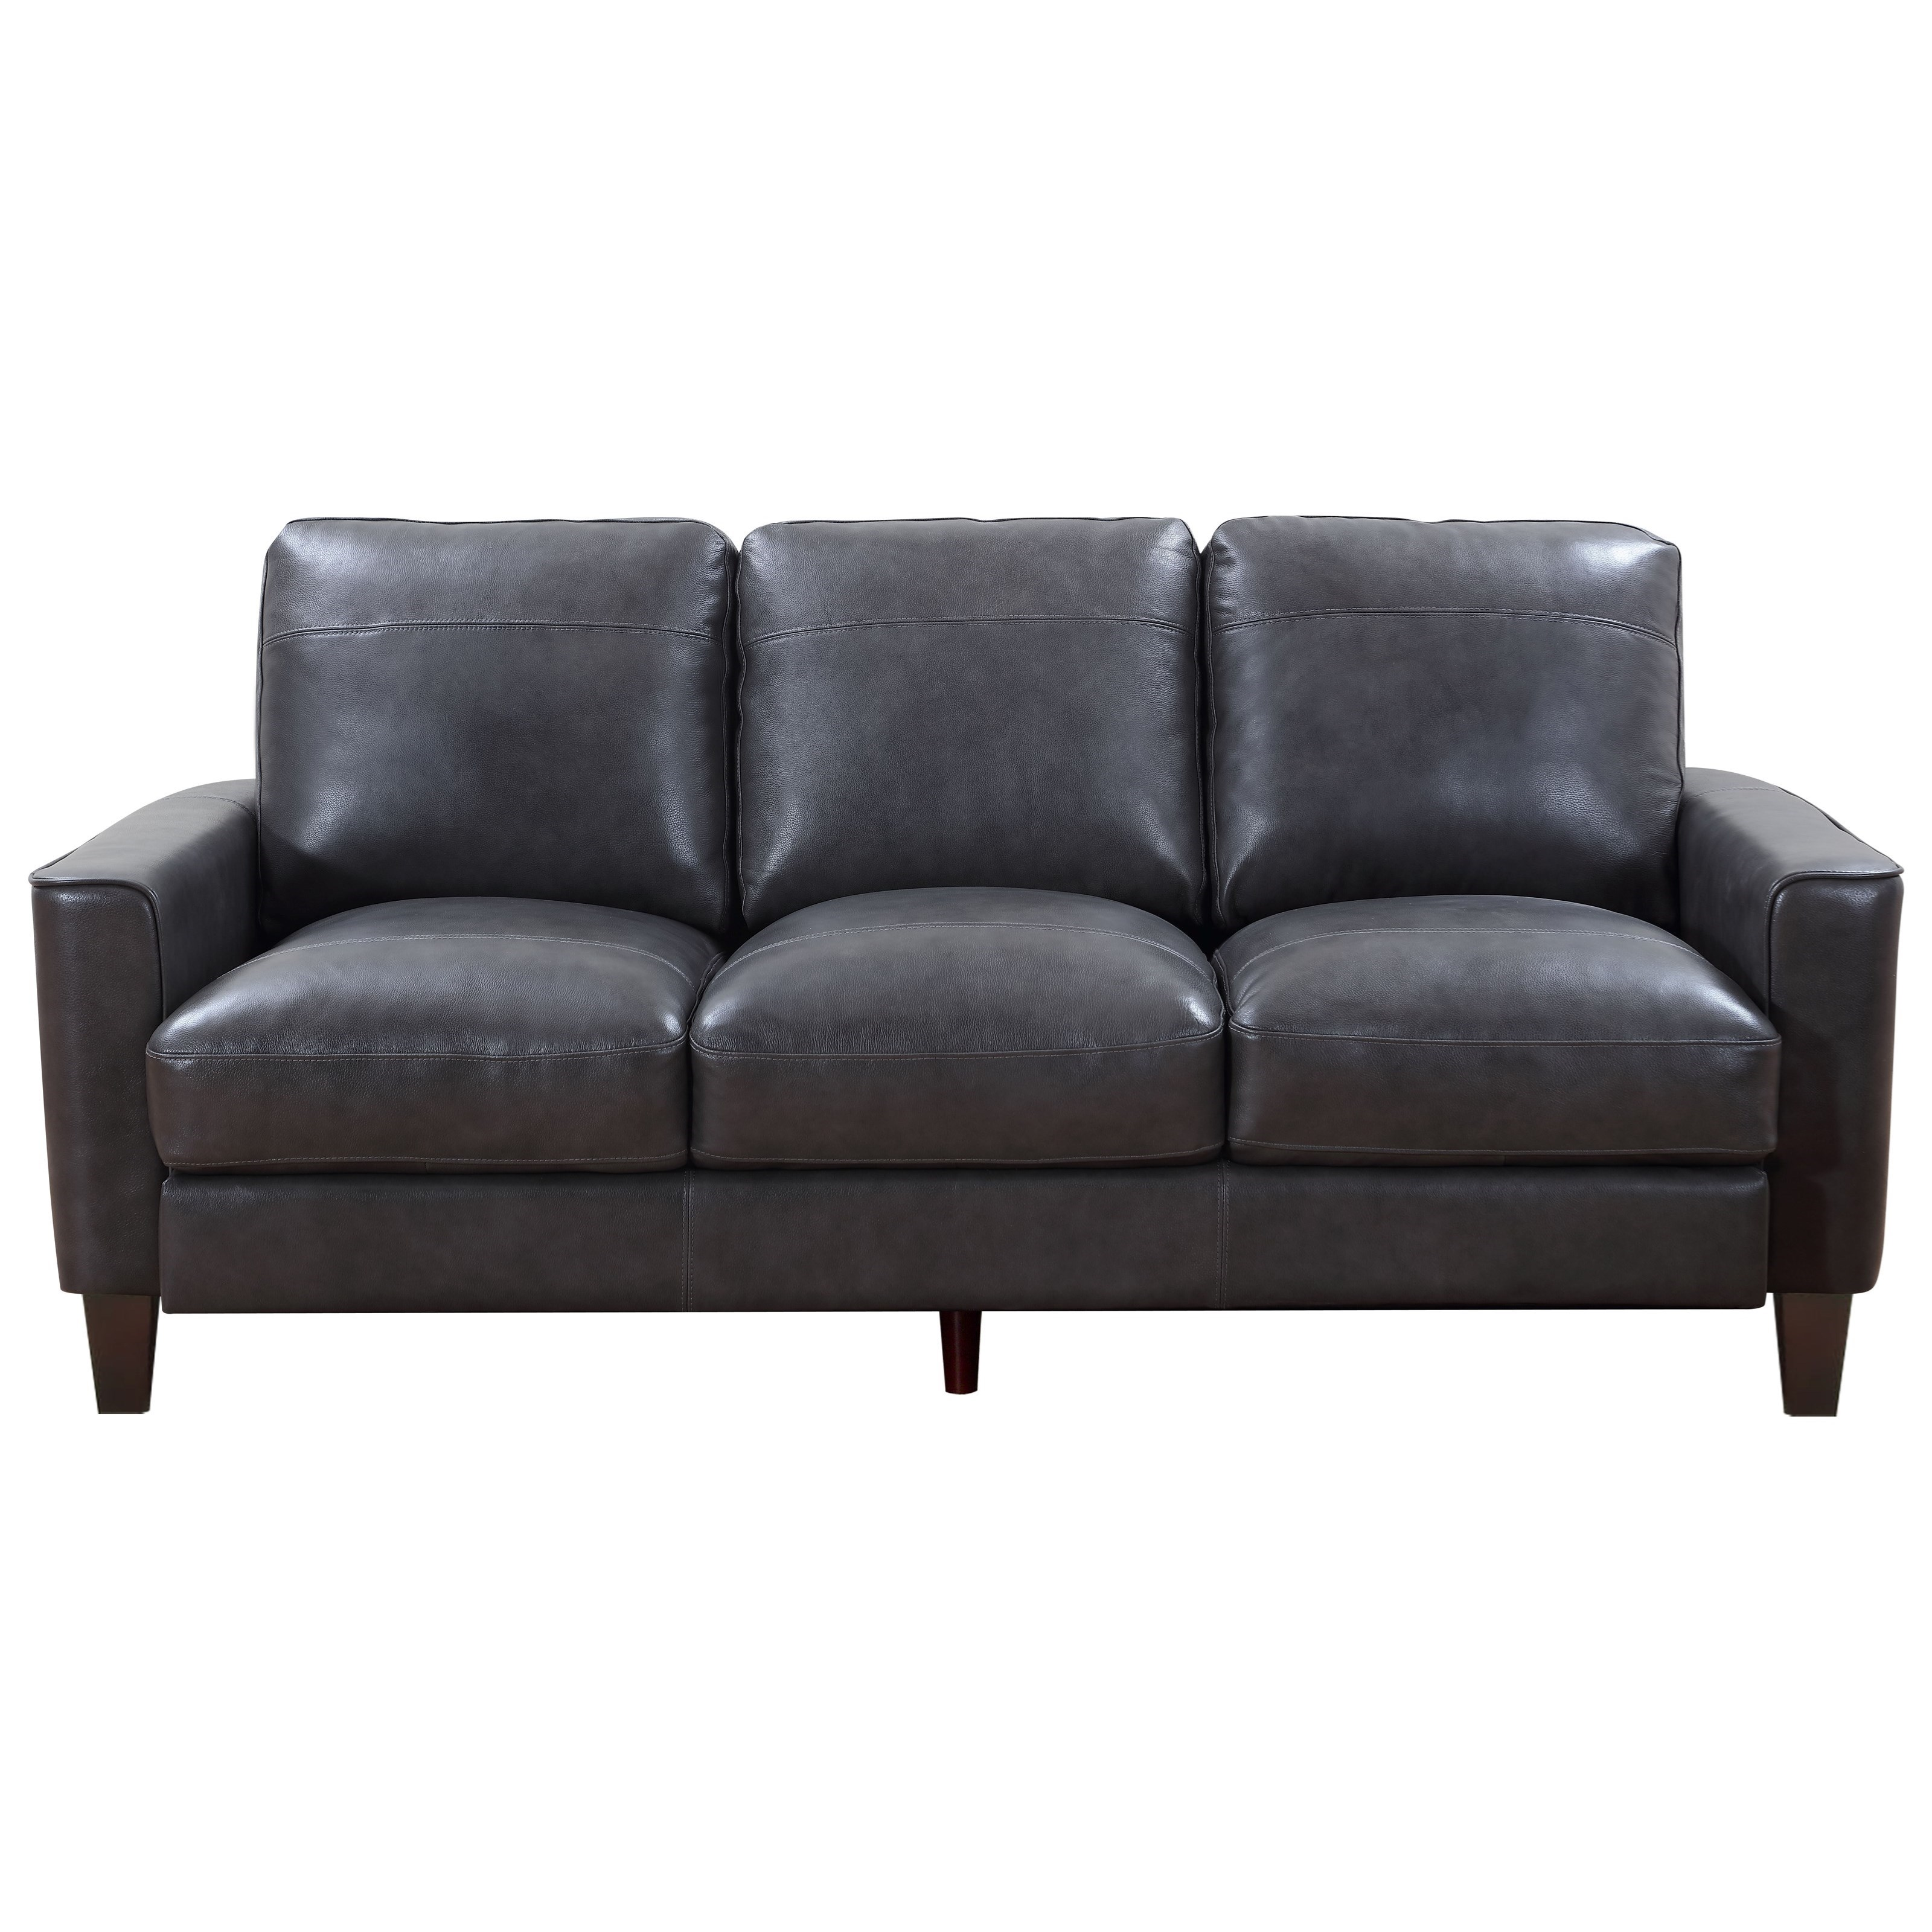 Georgetown - Chino Sofa by Leather Italia USA at Johnny Janosik